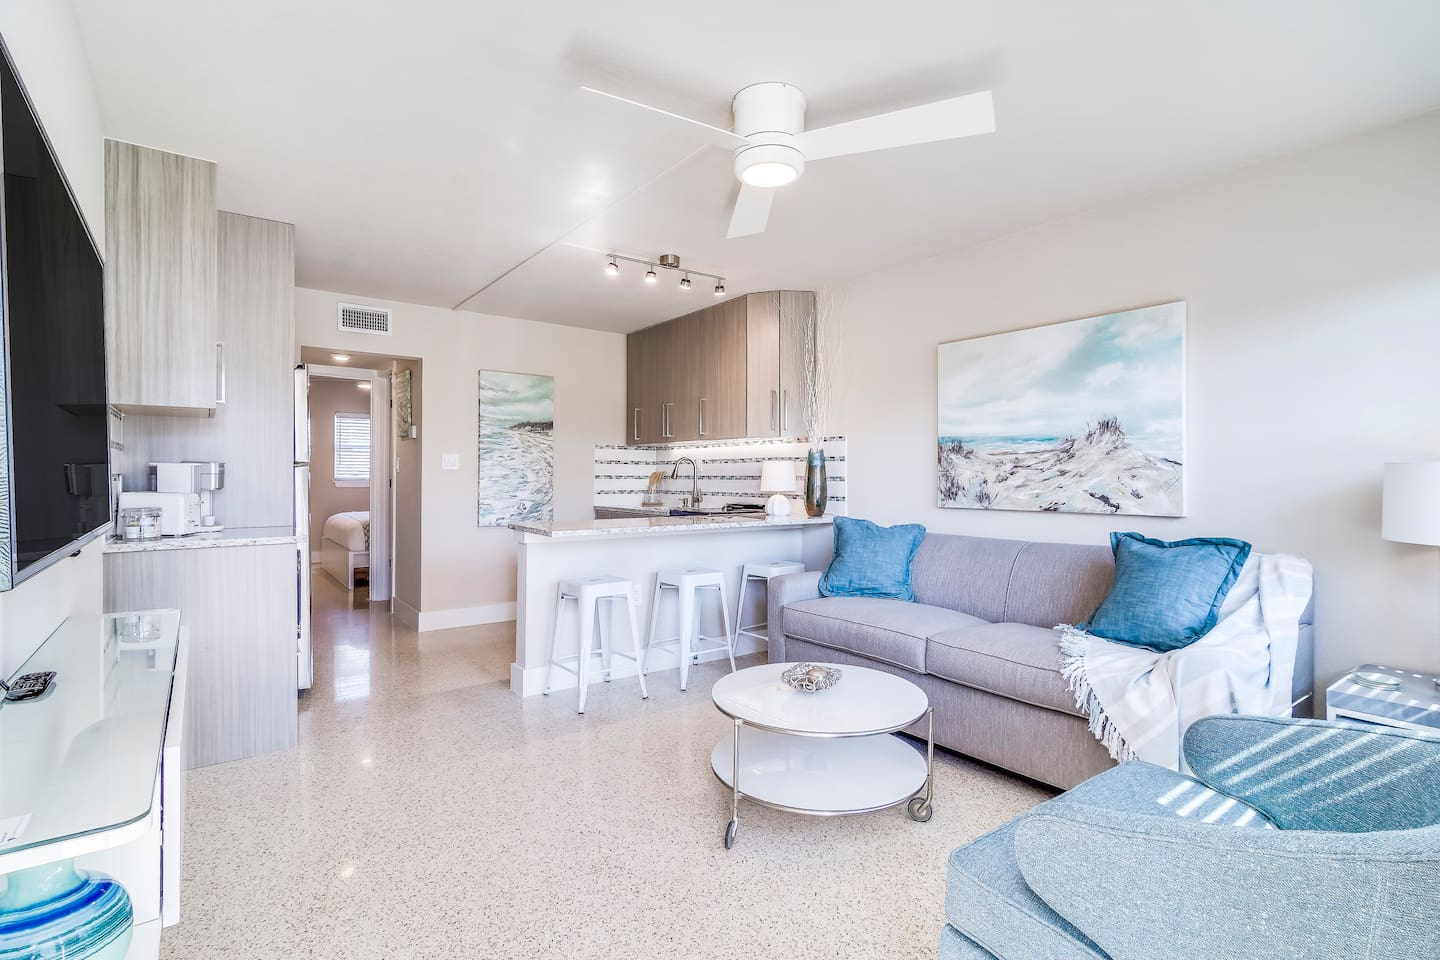 Beautiful 1 Bedroom apartment with local, original paintings